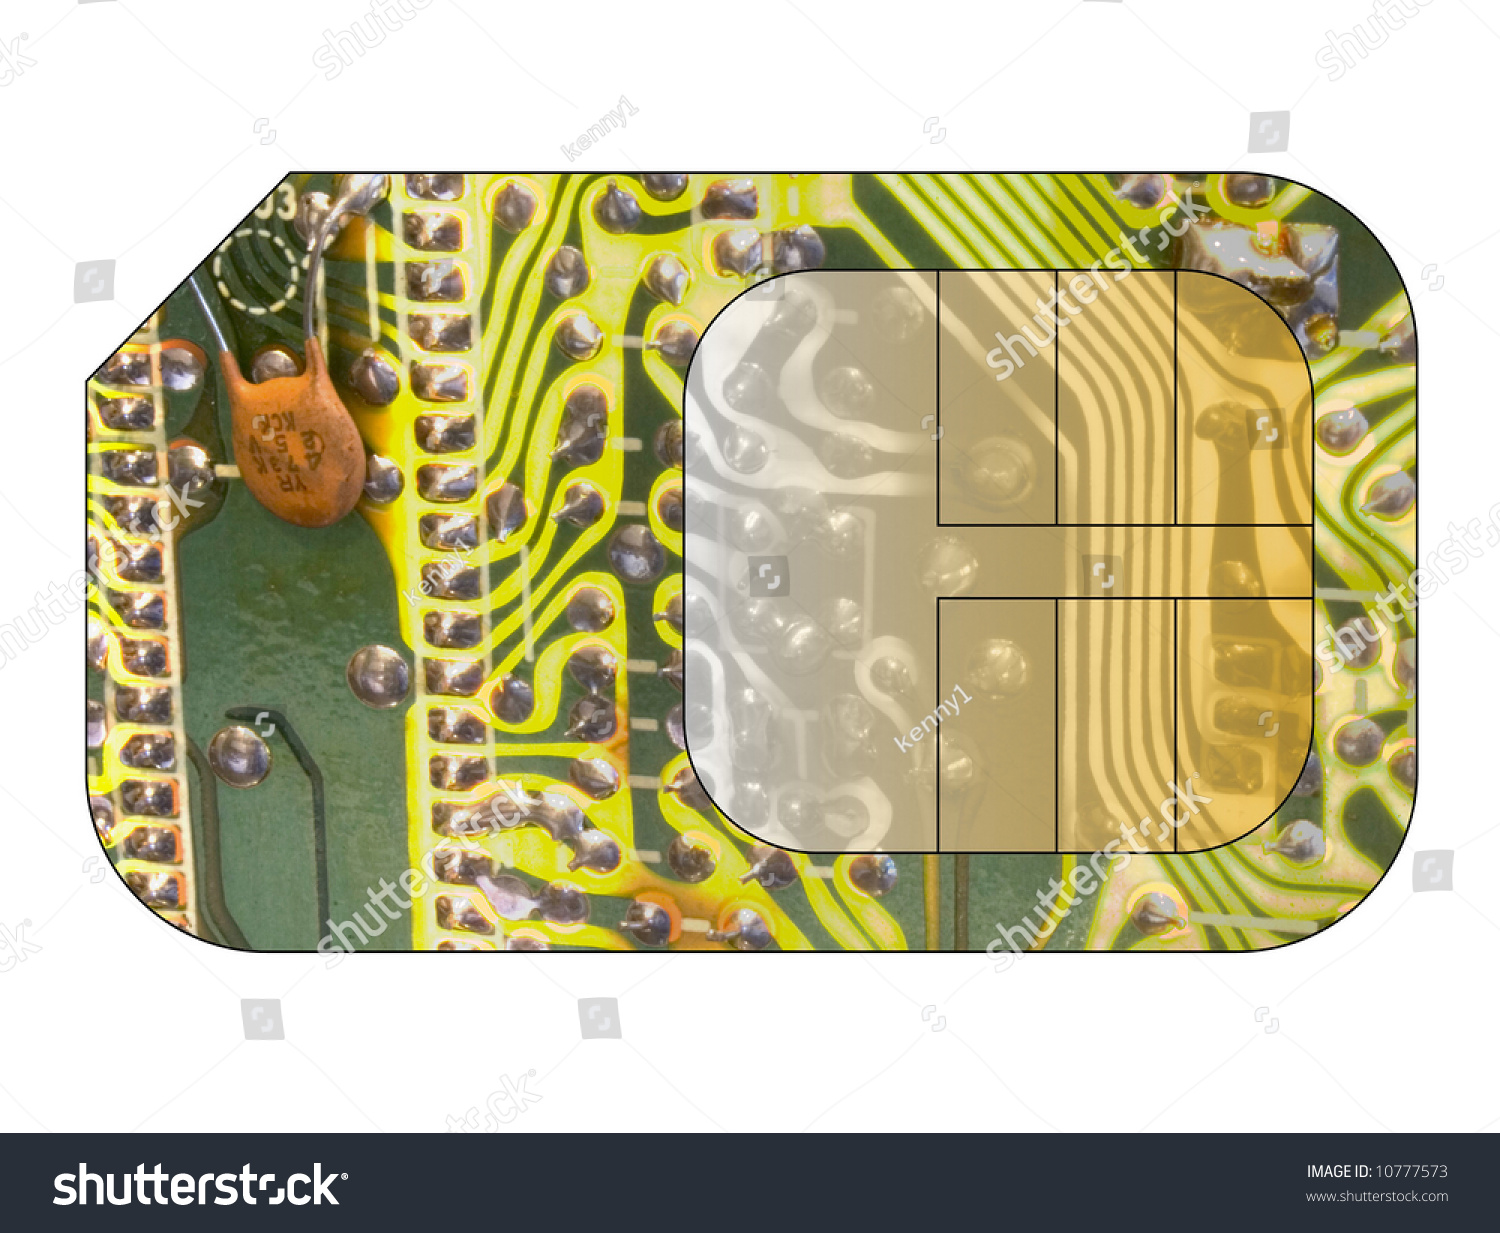 Cell Phone Sim Card Circuit Board Stock Illustration 10777573 With Overlay